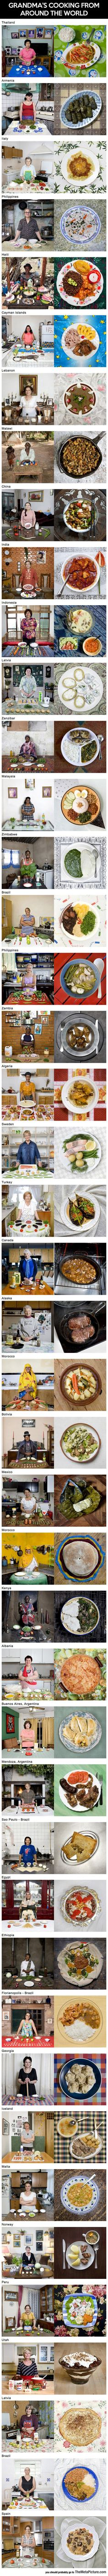 Grandma's Cooking In Different Parts Of The World